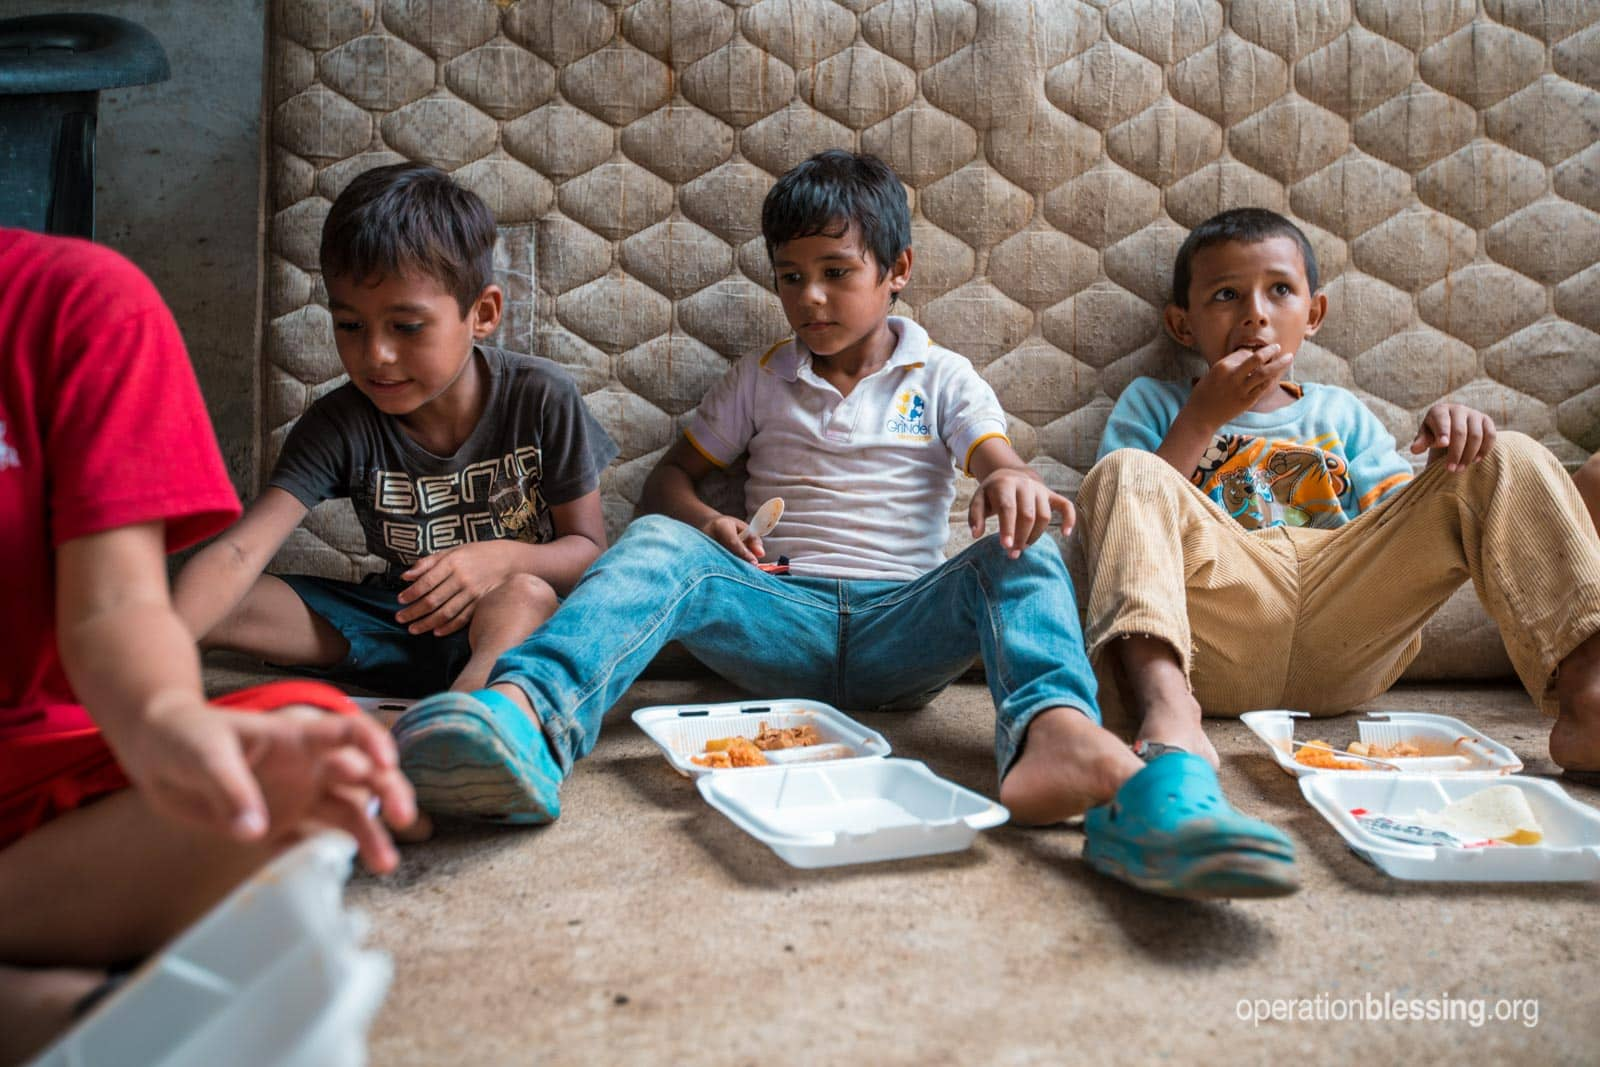 Angel and other boys eat hot meals while sitting on the floor.